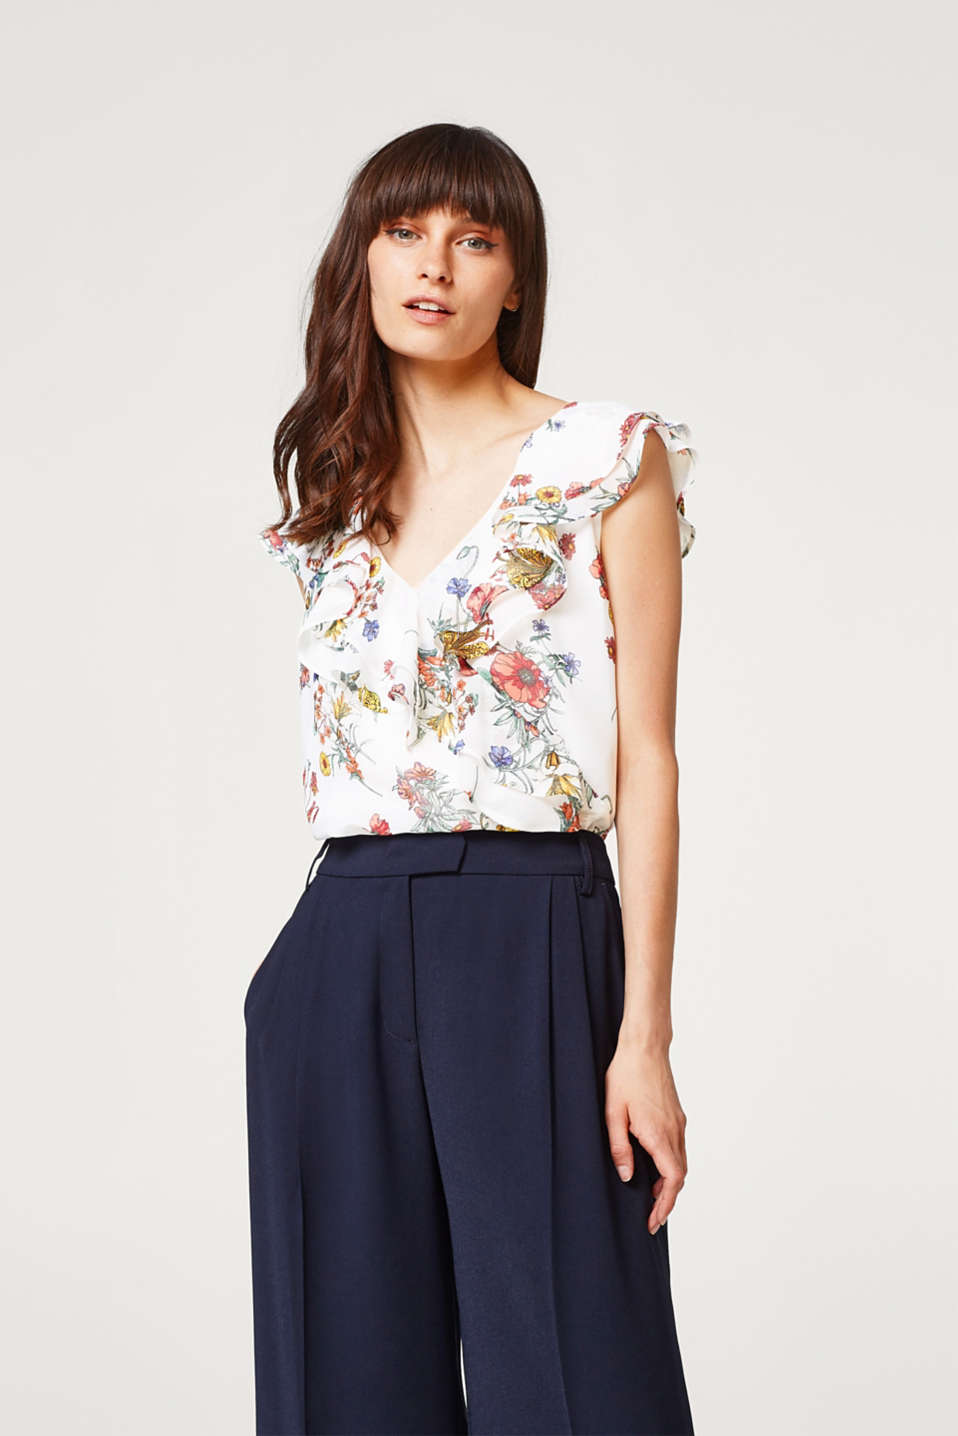 Esprit - Blouse top with a floral print and flounces